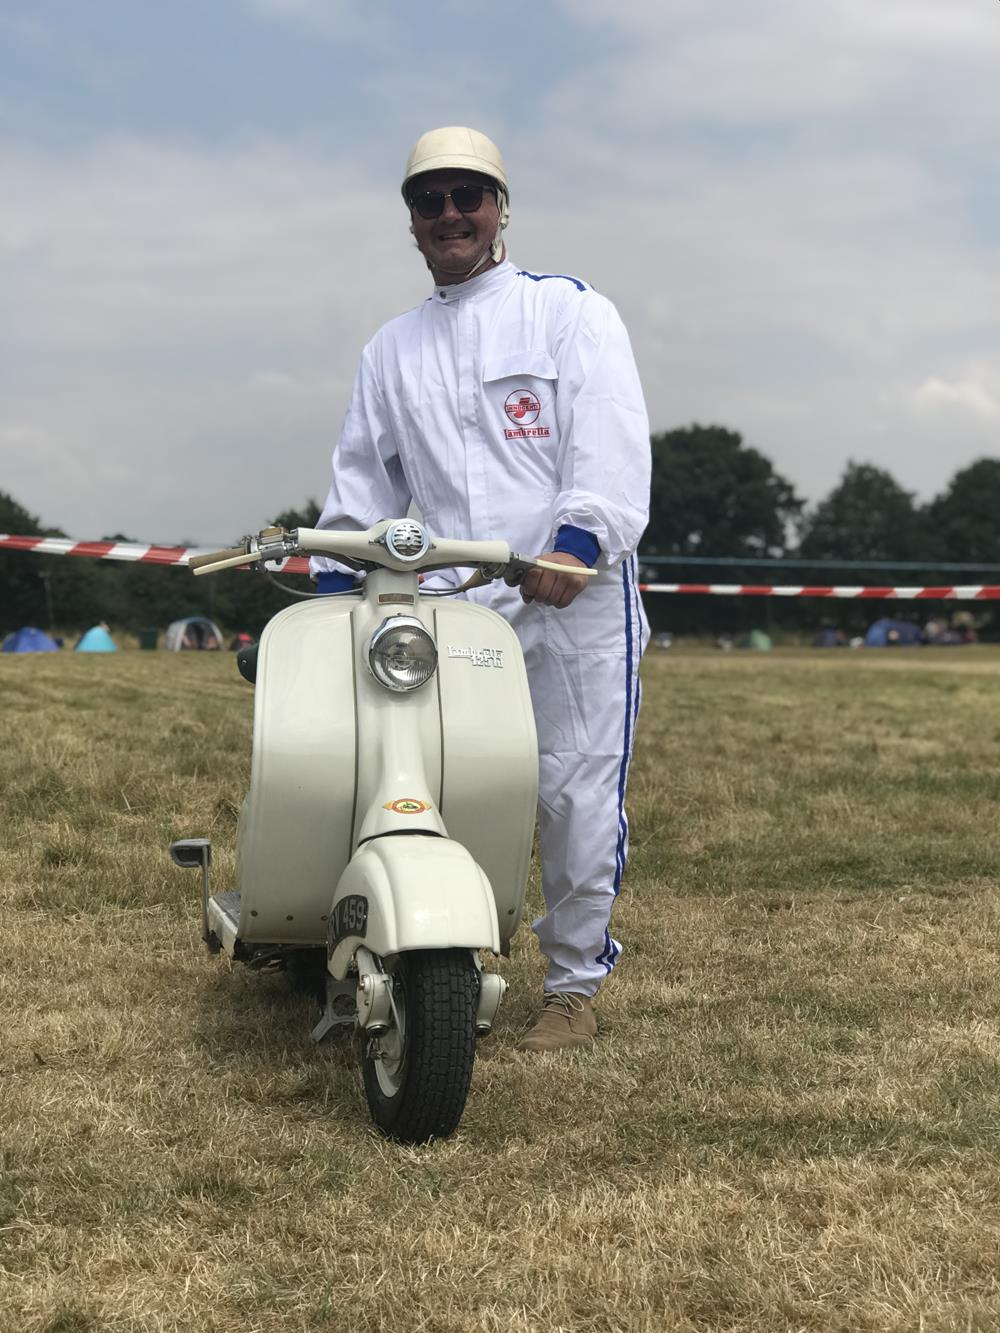 Scooter rider in white overalls next to a Vintage Lambretta LD